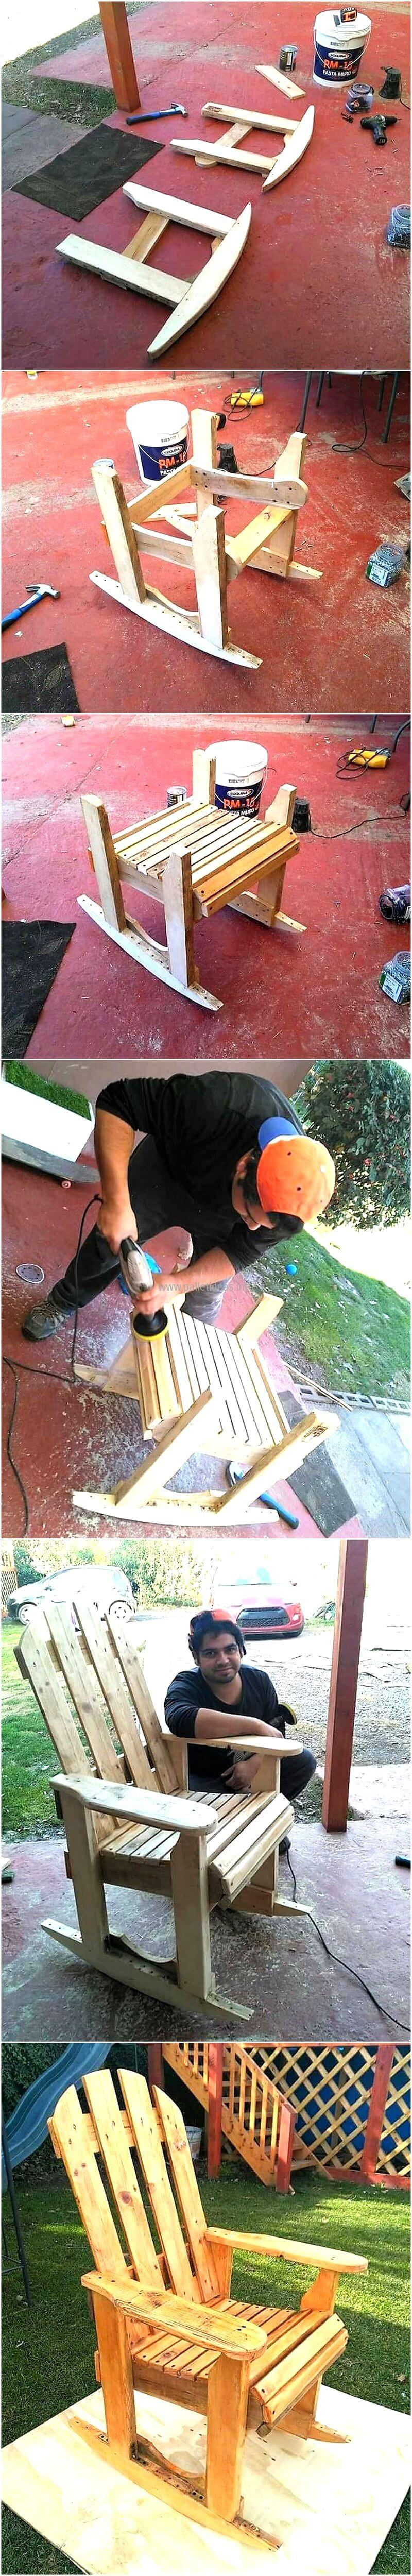 diy pallet rocking chair plans office gaming awesome free how to build a wood pallets plan here are the steps of creating for enjoying in lawn with beauty nature